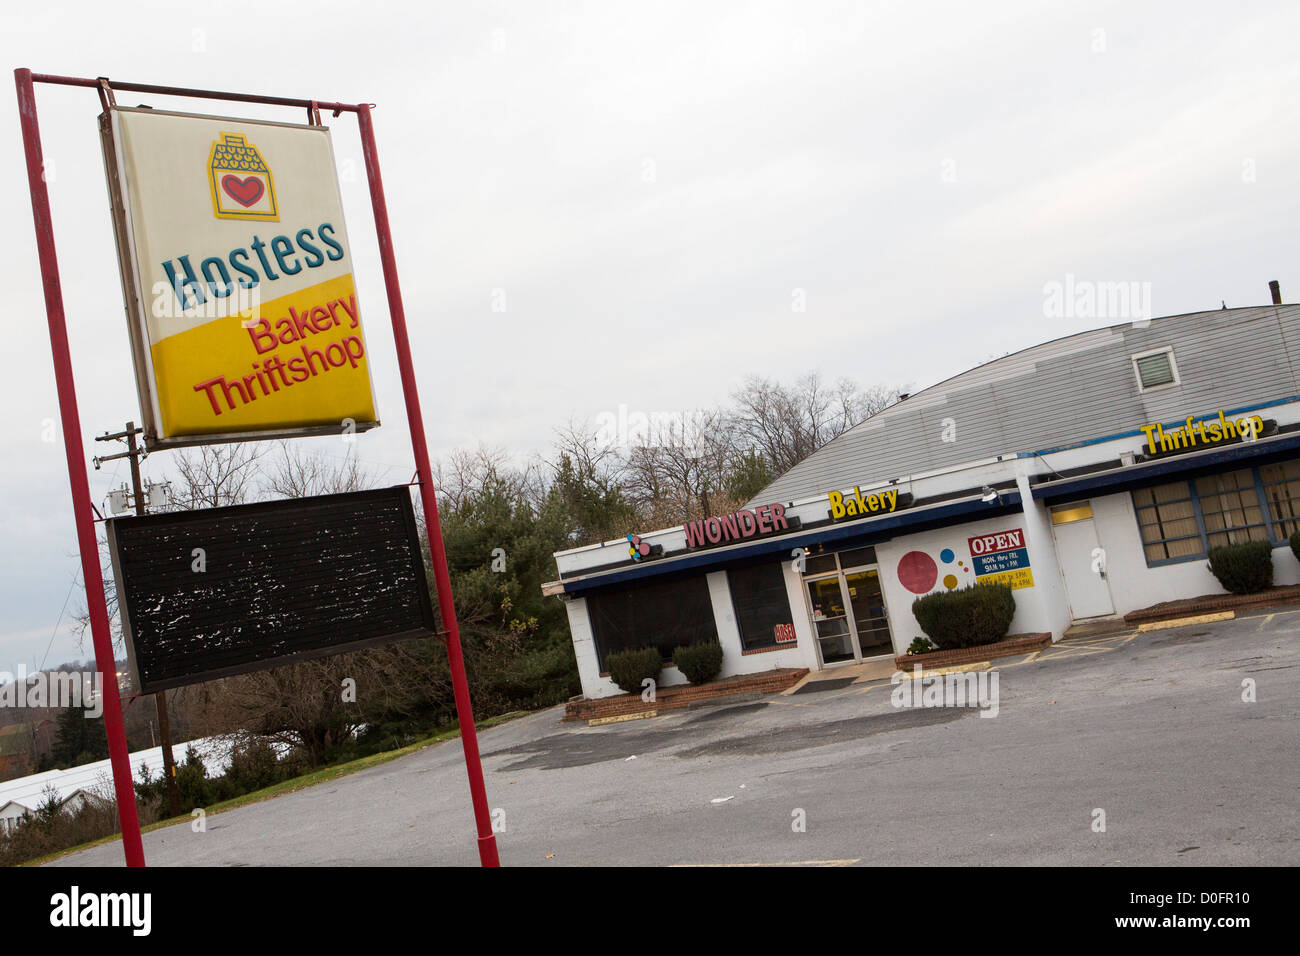 A closed Hostess bakery outlet store Stock Photo: 51978444